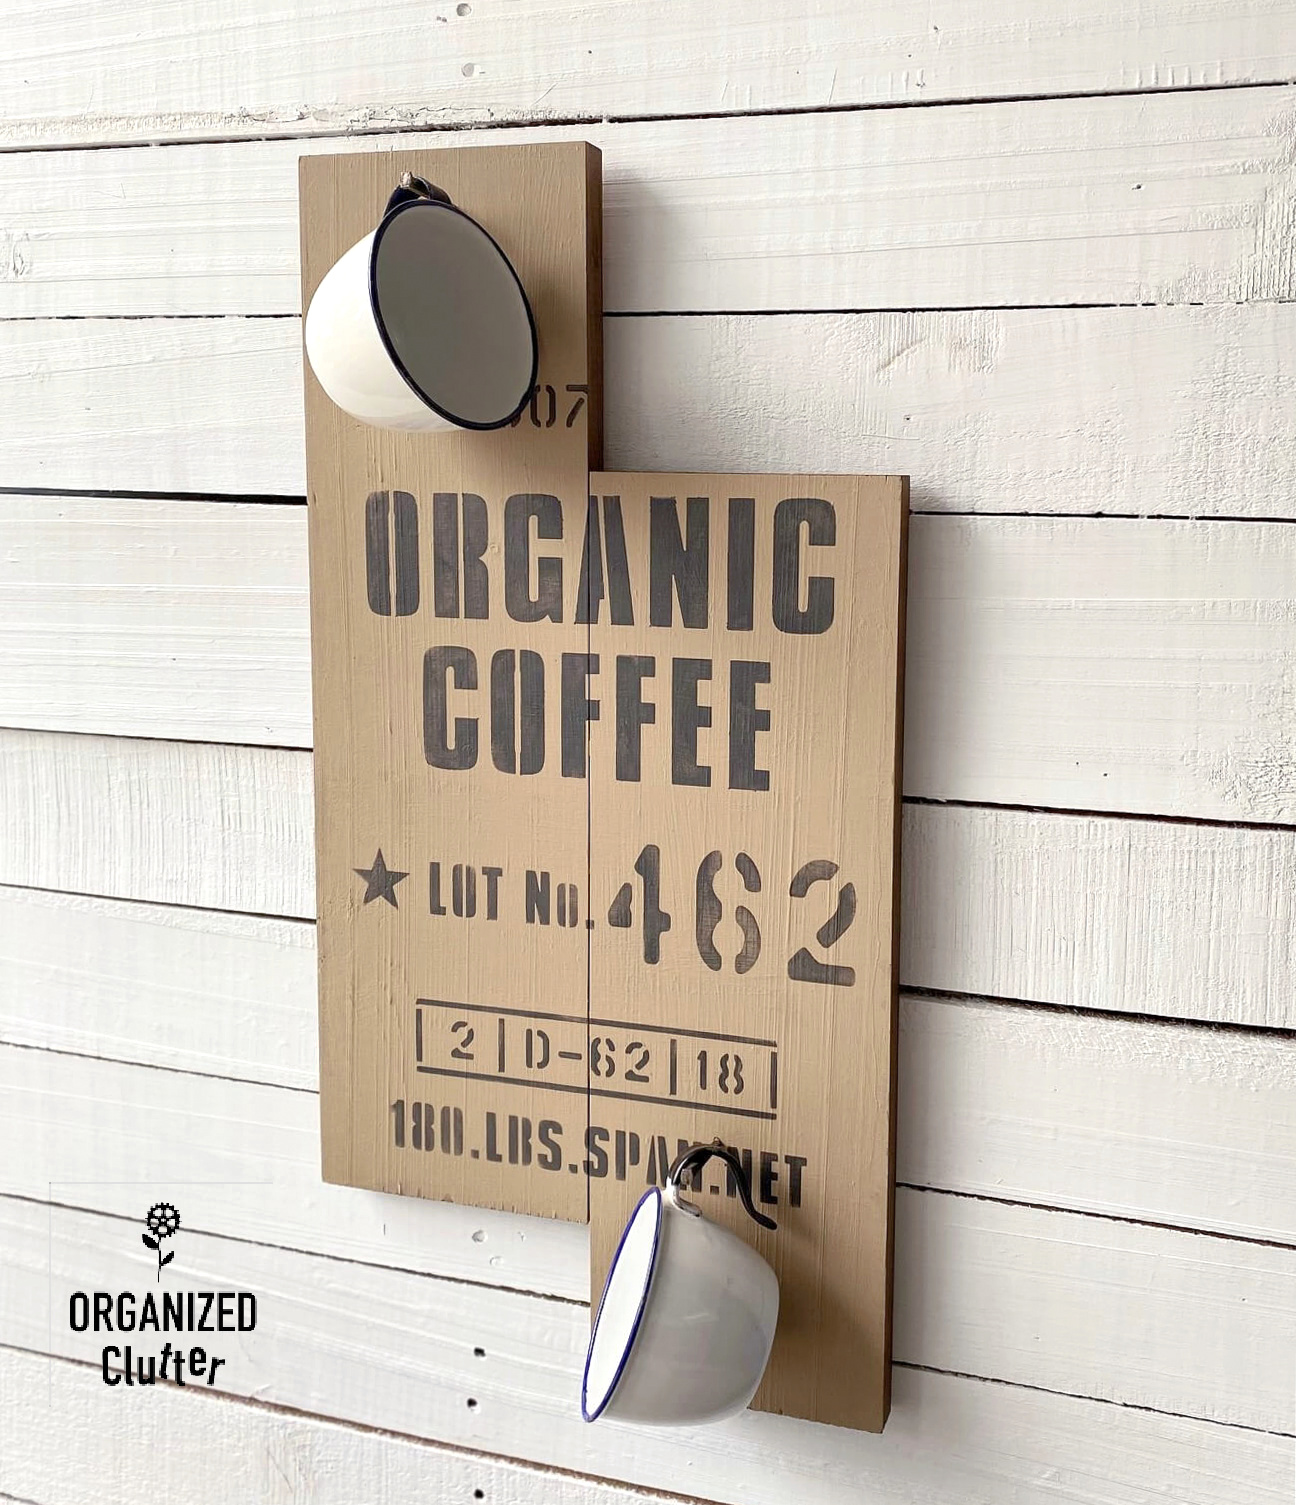 2 board Organic coffee wood sign by Organized Clutter, featured on DIY Salvaged Junk Projects 573 on Funky Junk!